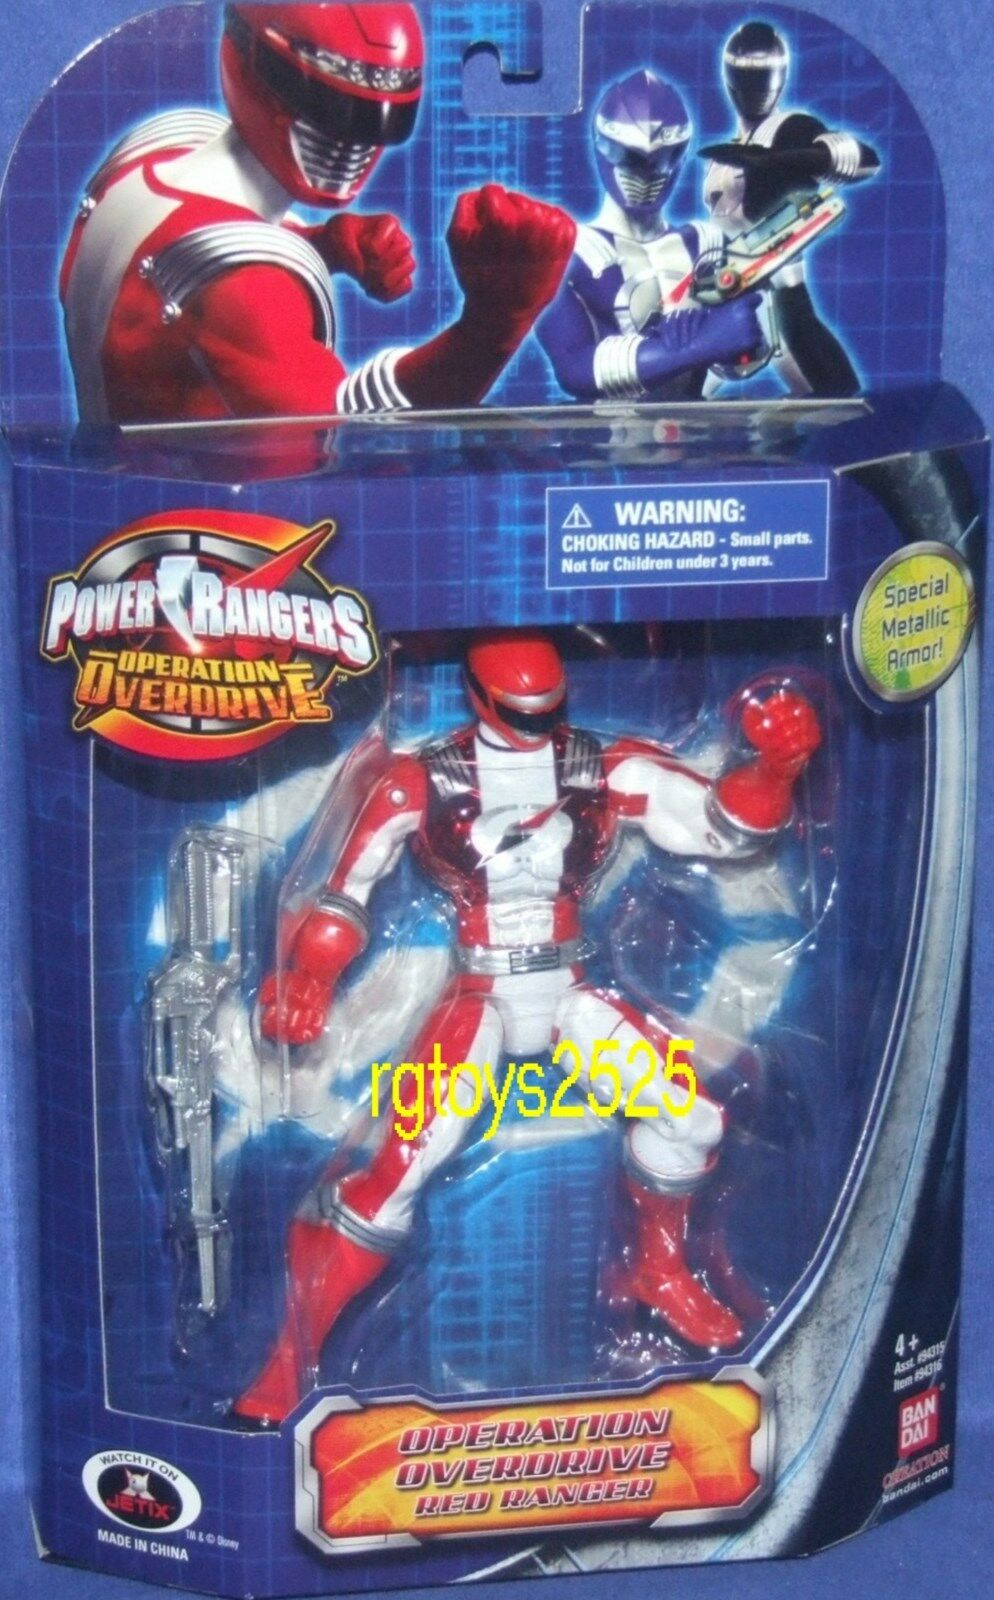 Power rangers operation overdrive rot metallic - fabrik versiegelt